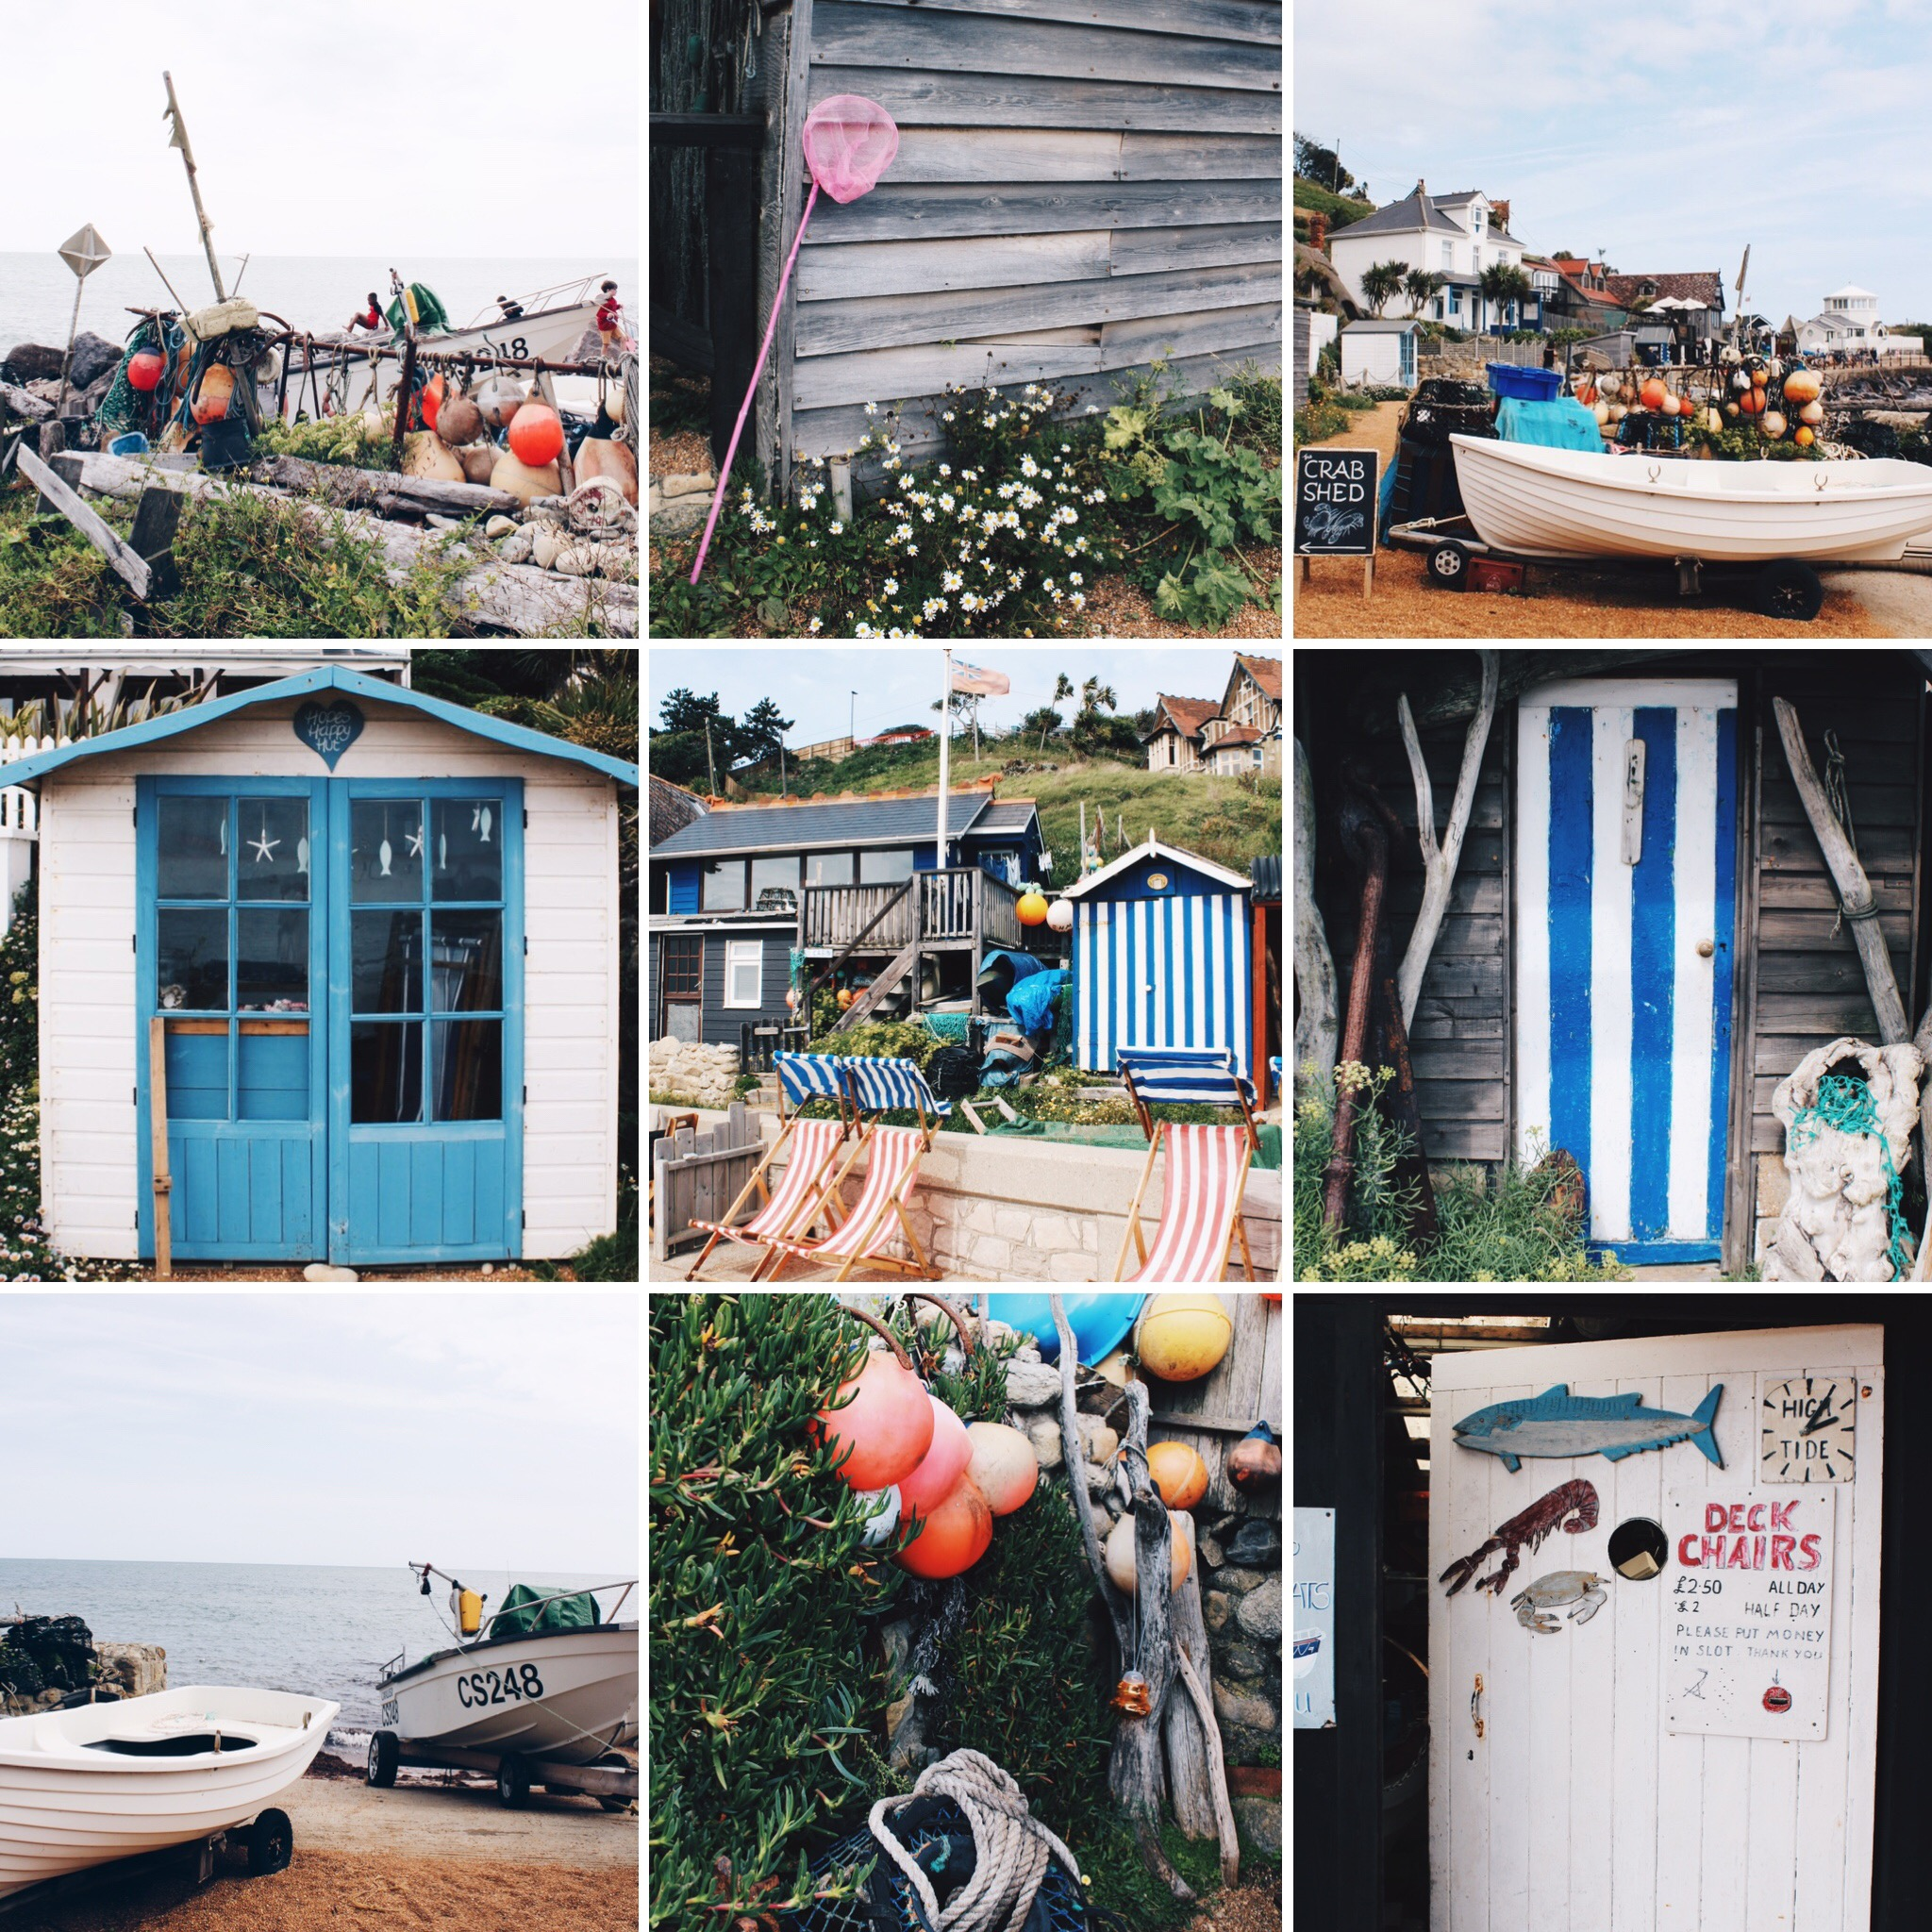 Some images from Steephill Cove.  It is like something from a fifties children's book and feels like a very loved place.  There was laughter and the smell of crab pasties baking in the air.  We loved it and wish we had discovered it earlier on in our holiday.